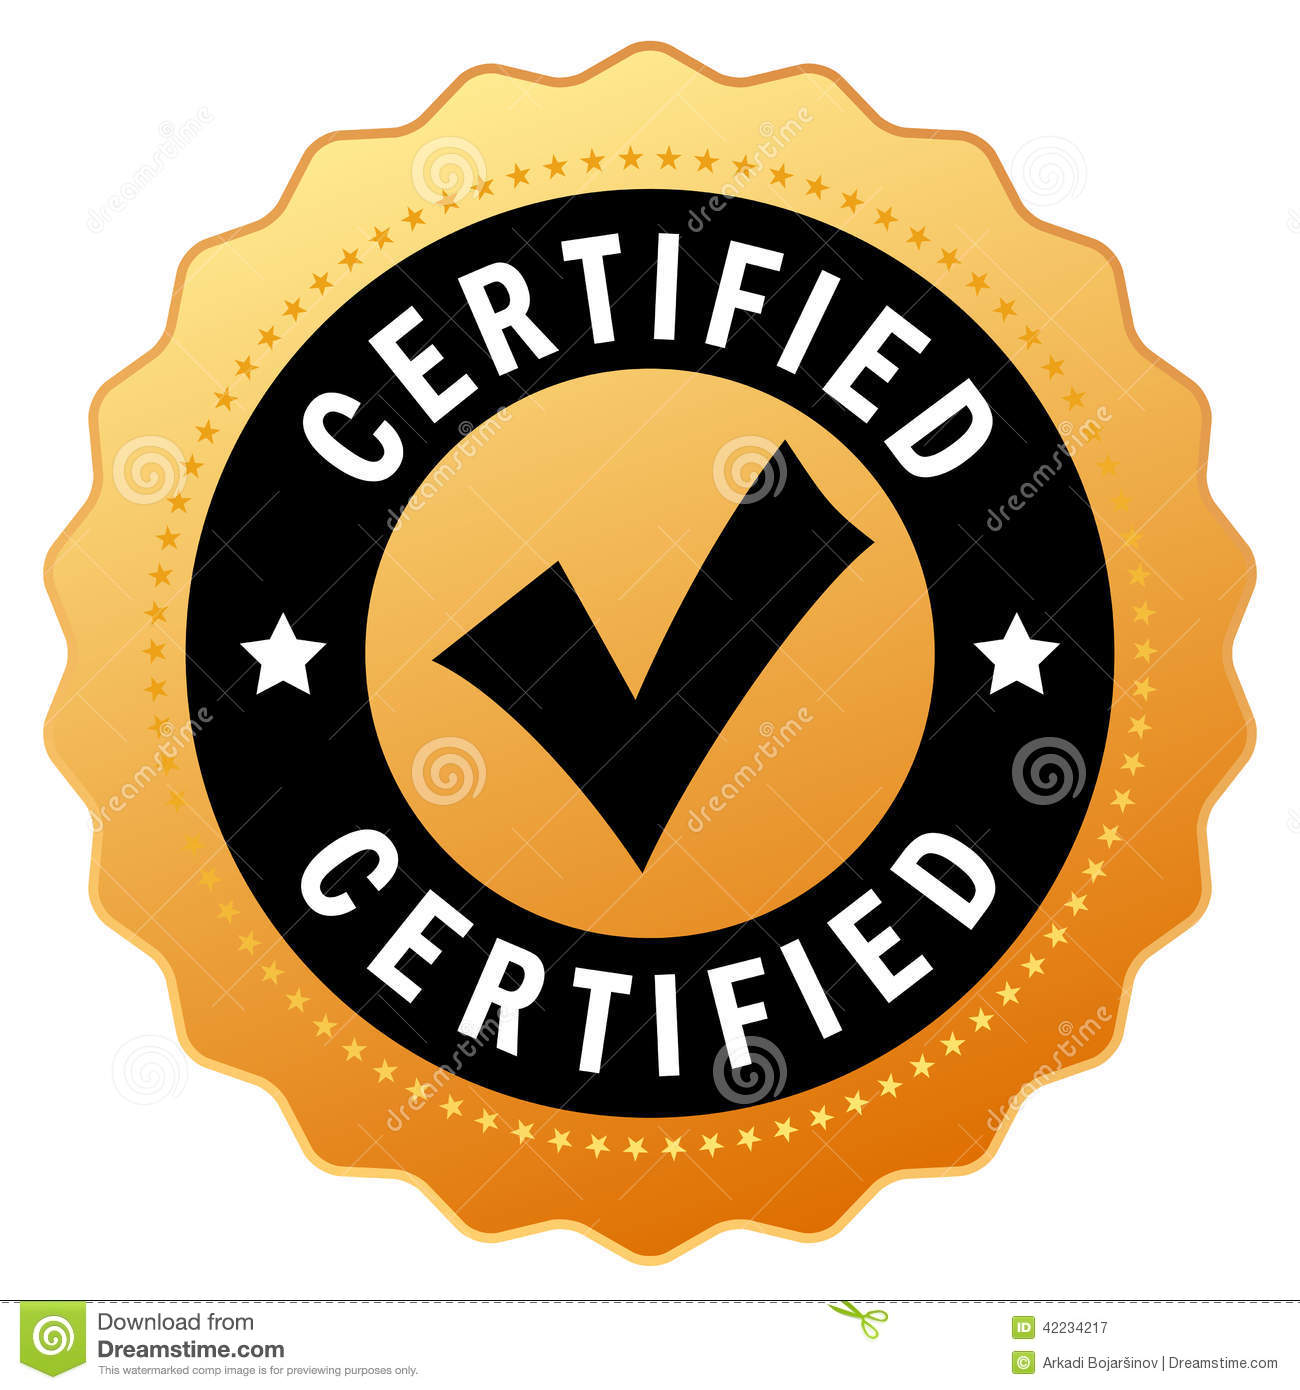 Vector Certified Icon Stock Vector - Image: 42234217: www.dreamstime.com/stock-illustration-vector-certified-icon...